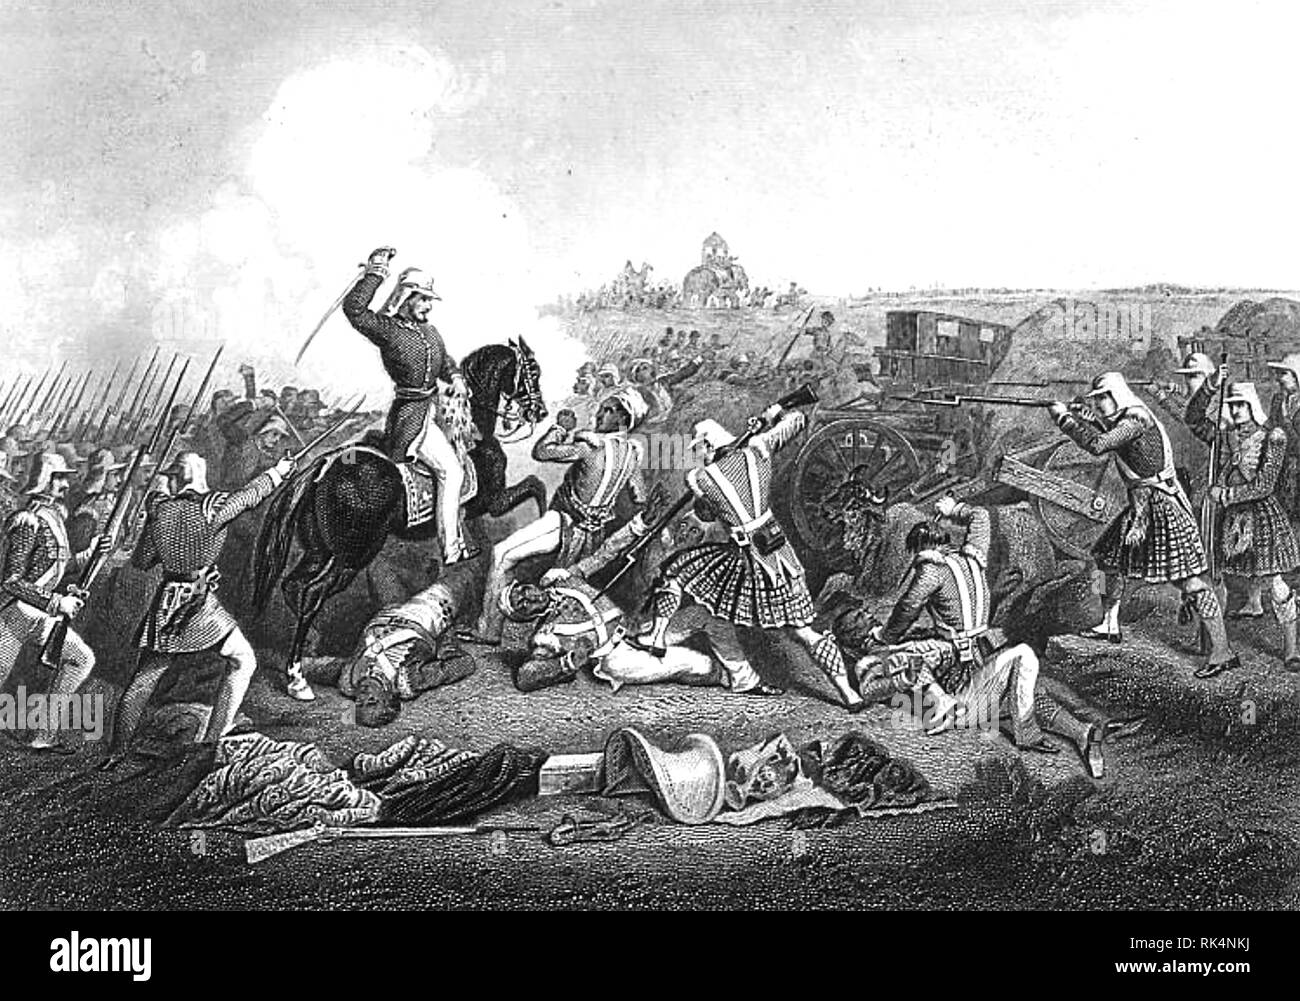 HENRY HAVELOCK (1795-1857)  British Army General. His forces attacking those of Nana Sahib at Futtyporer (Fatephur) in 1857 during the Indian Mutiny. Stock Photo